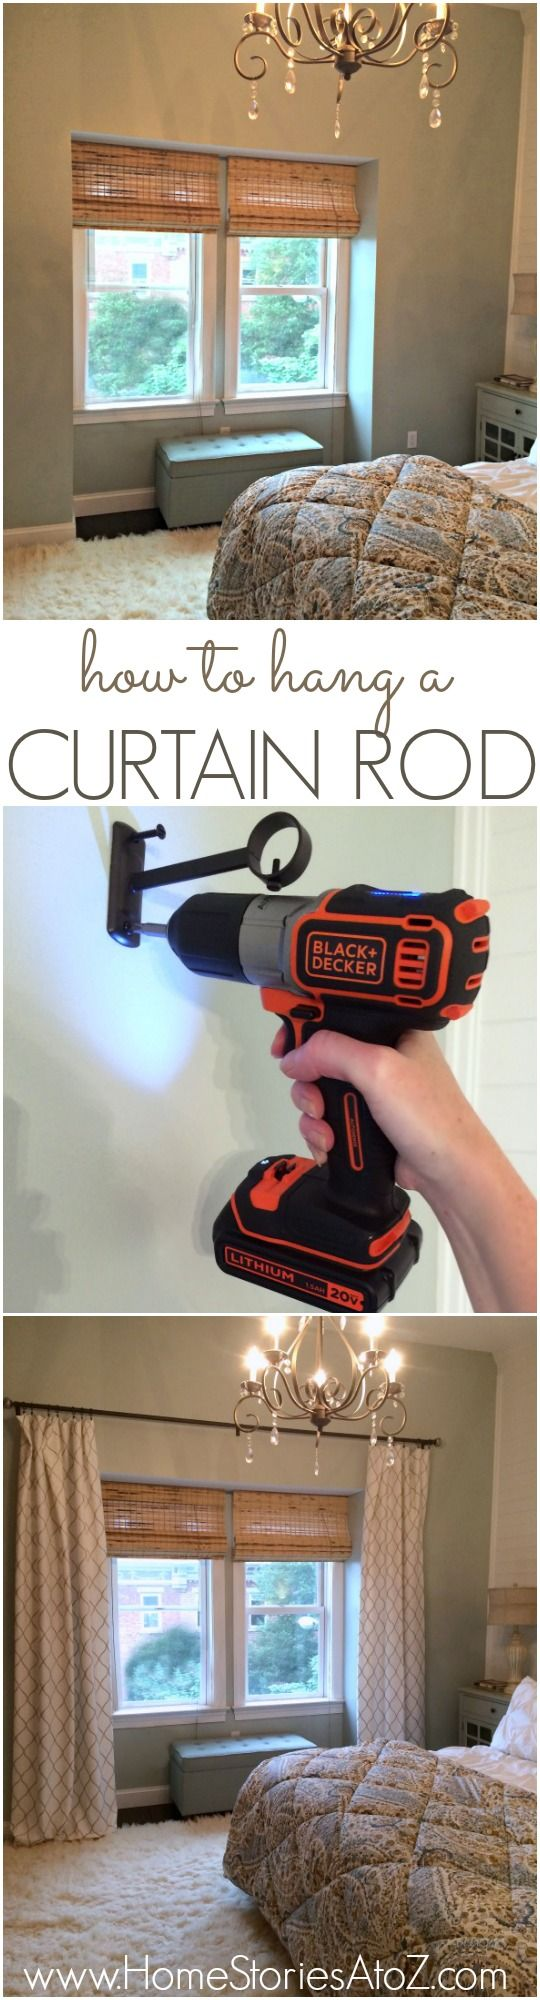 Very simple and easy step-by-step tutorial on how to hang a curtain rod. No need to wait for anyone to help!